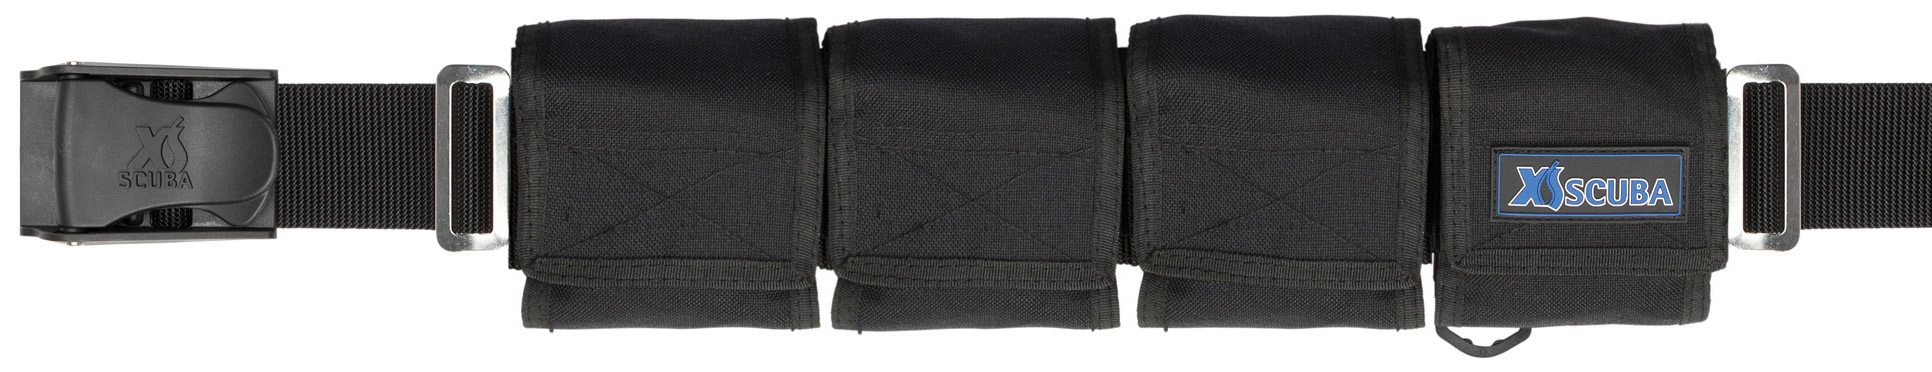 XS Scuba Zippered 4 Pocket 20lb Weight Belt